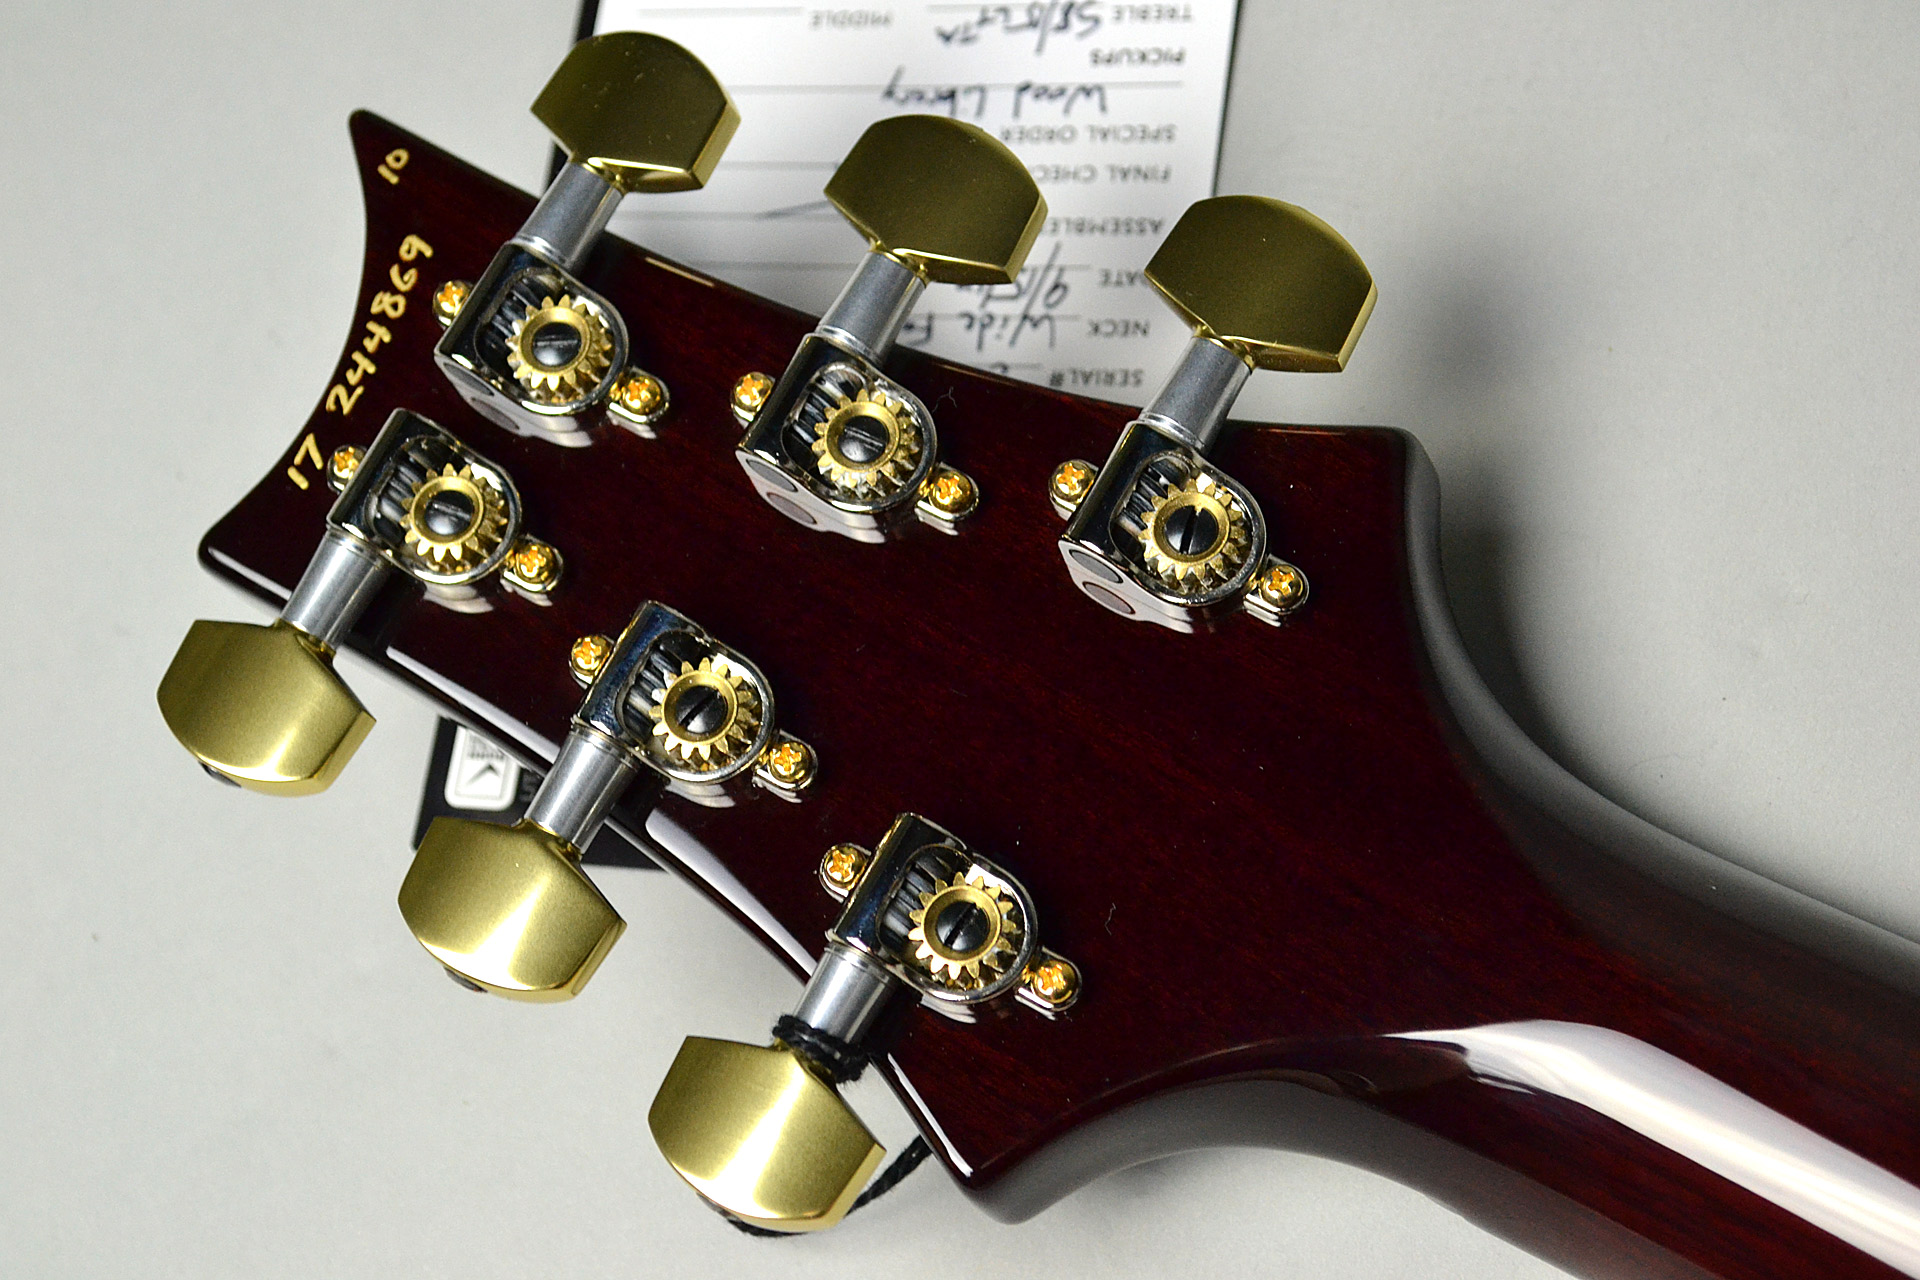 SINGLECUT TREM Wide Fat Neck Wood Library Fire Red Burstのヘッド裏-アップ画像